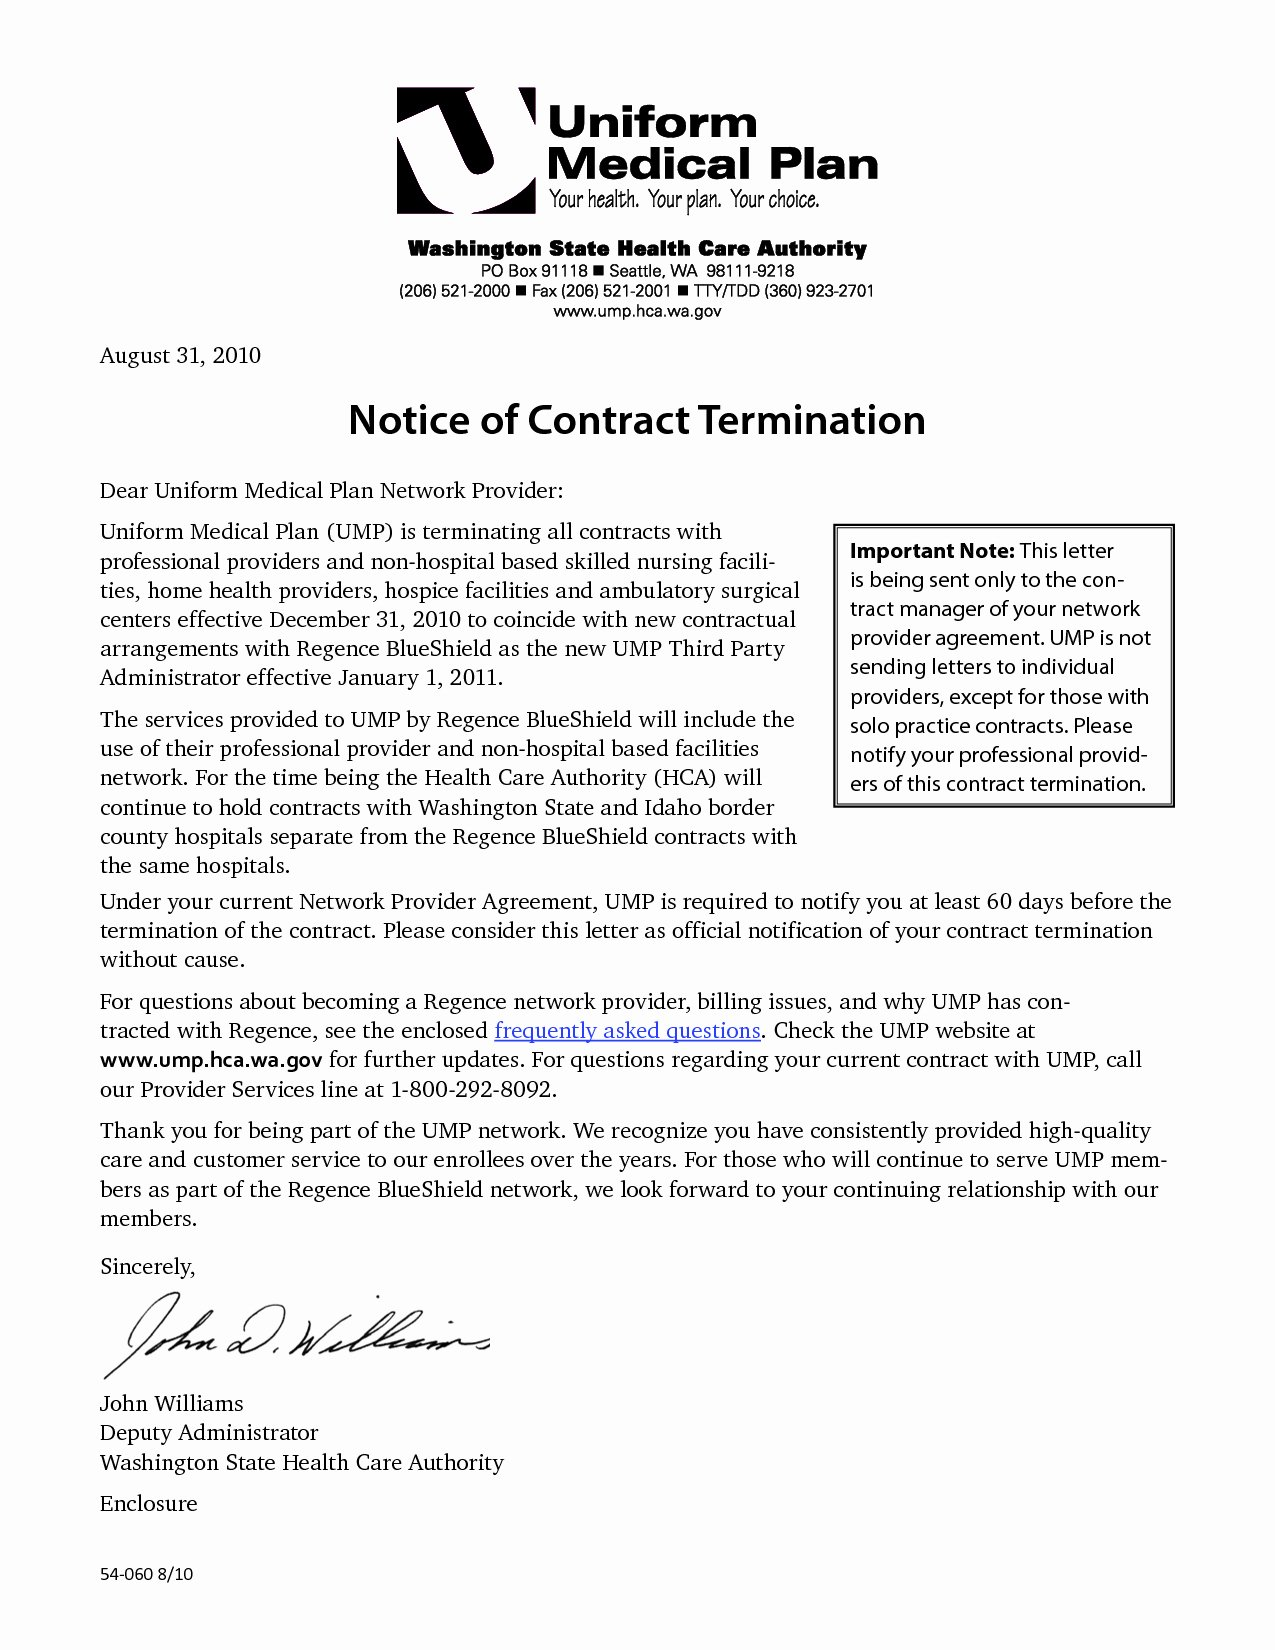 Contract Termination Letter Template Unique Service Contract Termination Letter Template Samples